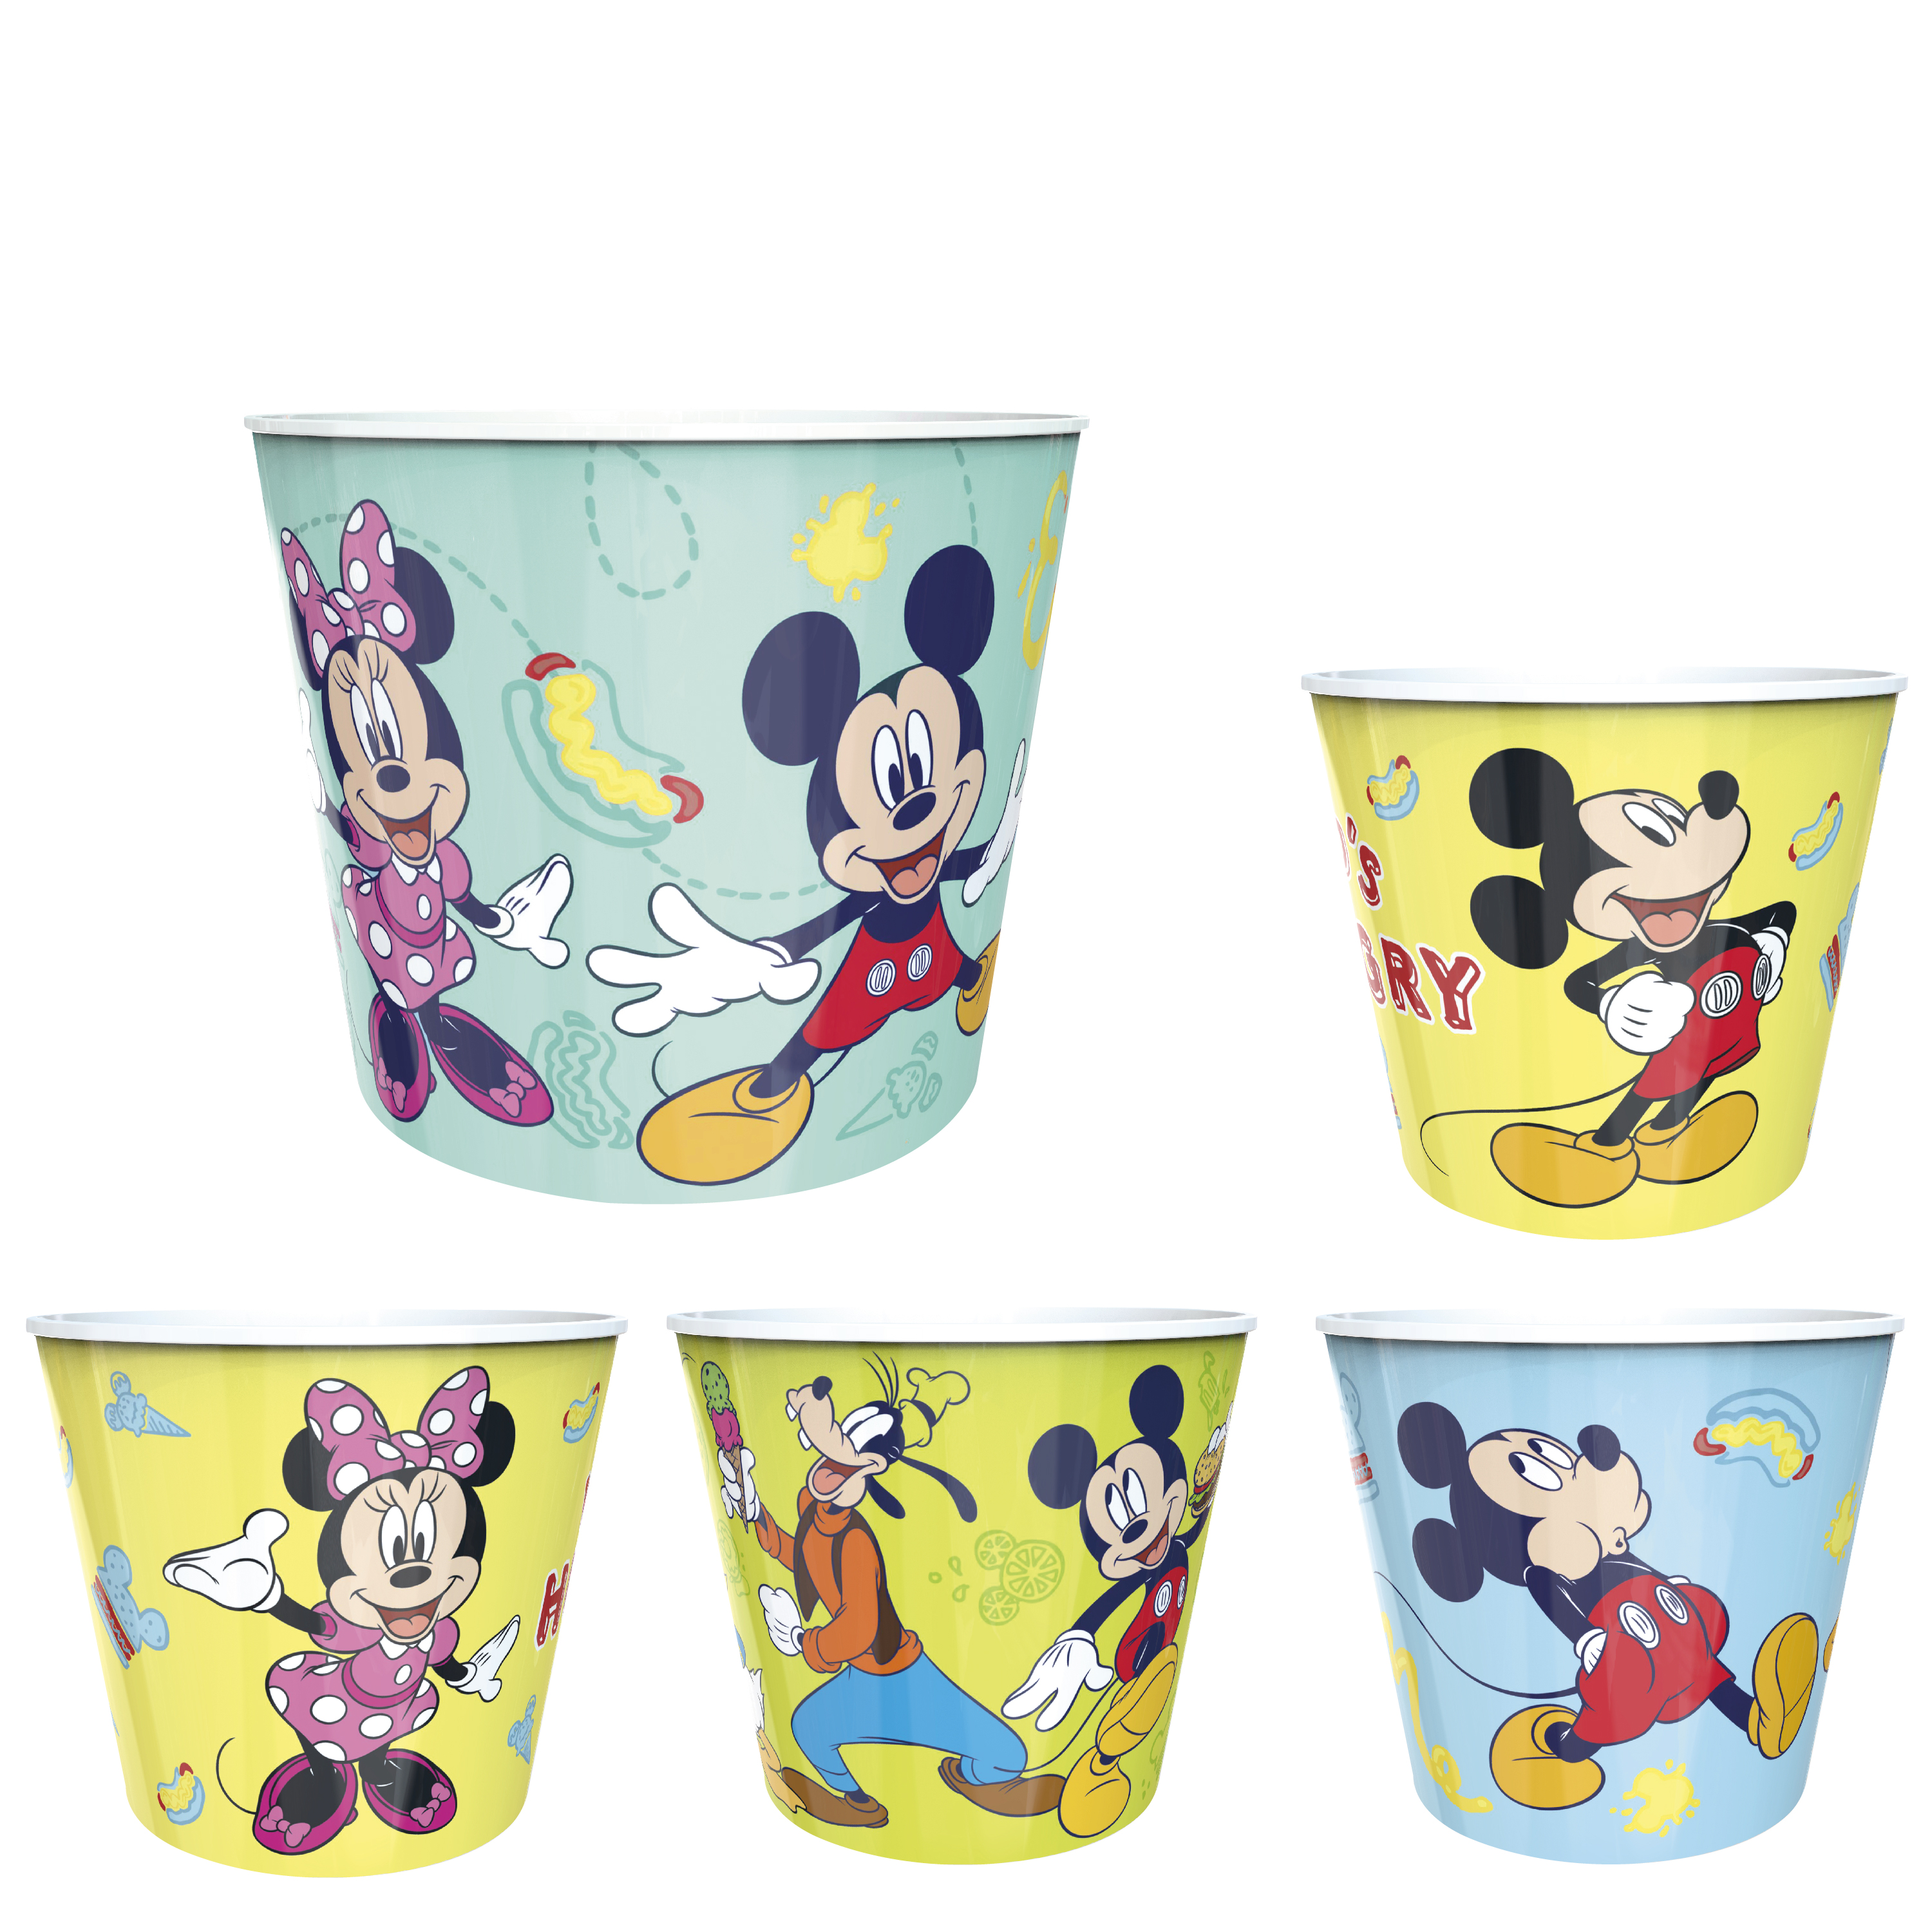 Disney Plastic Popcorn Container and Bowls, Mickey Mouse and Minnie Mouse, 5-piece set slideshow image 1